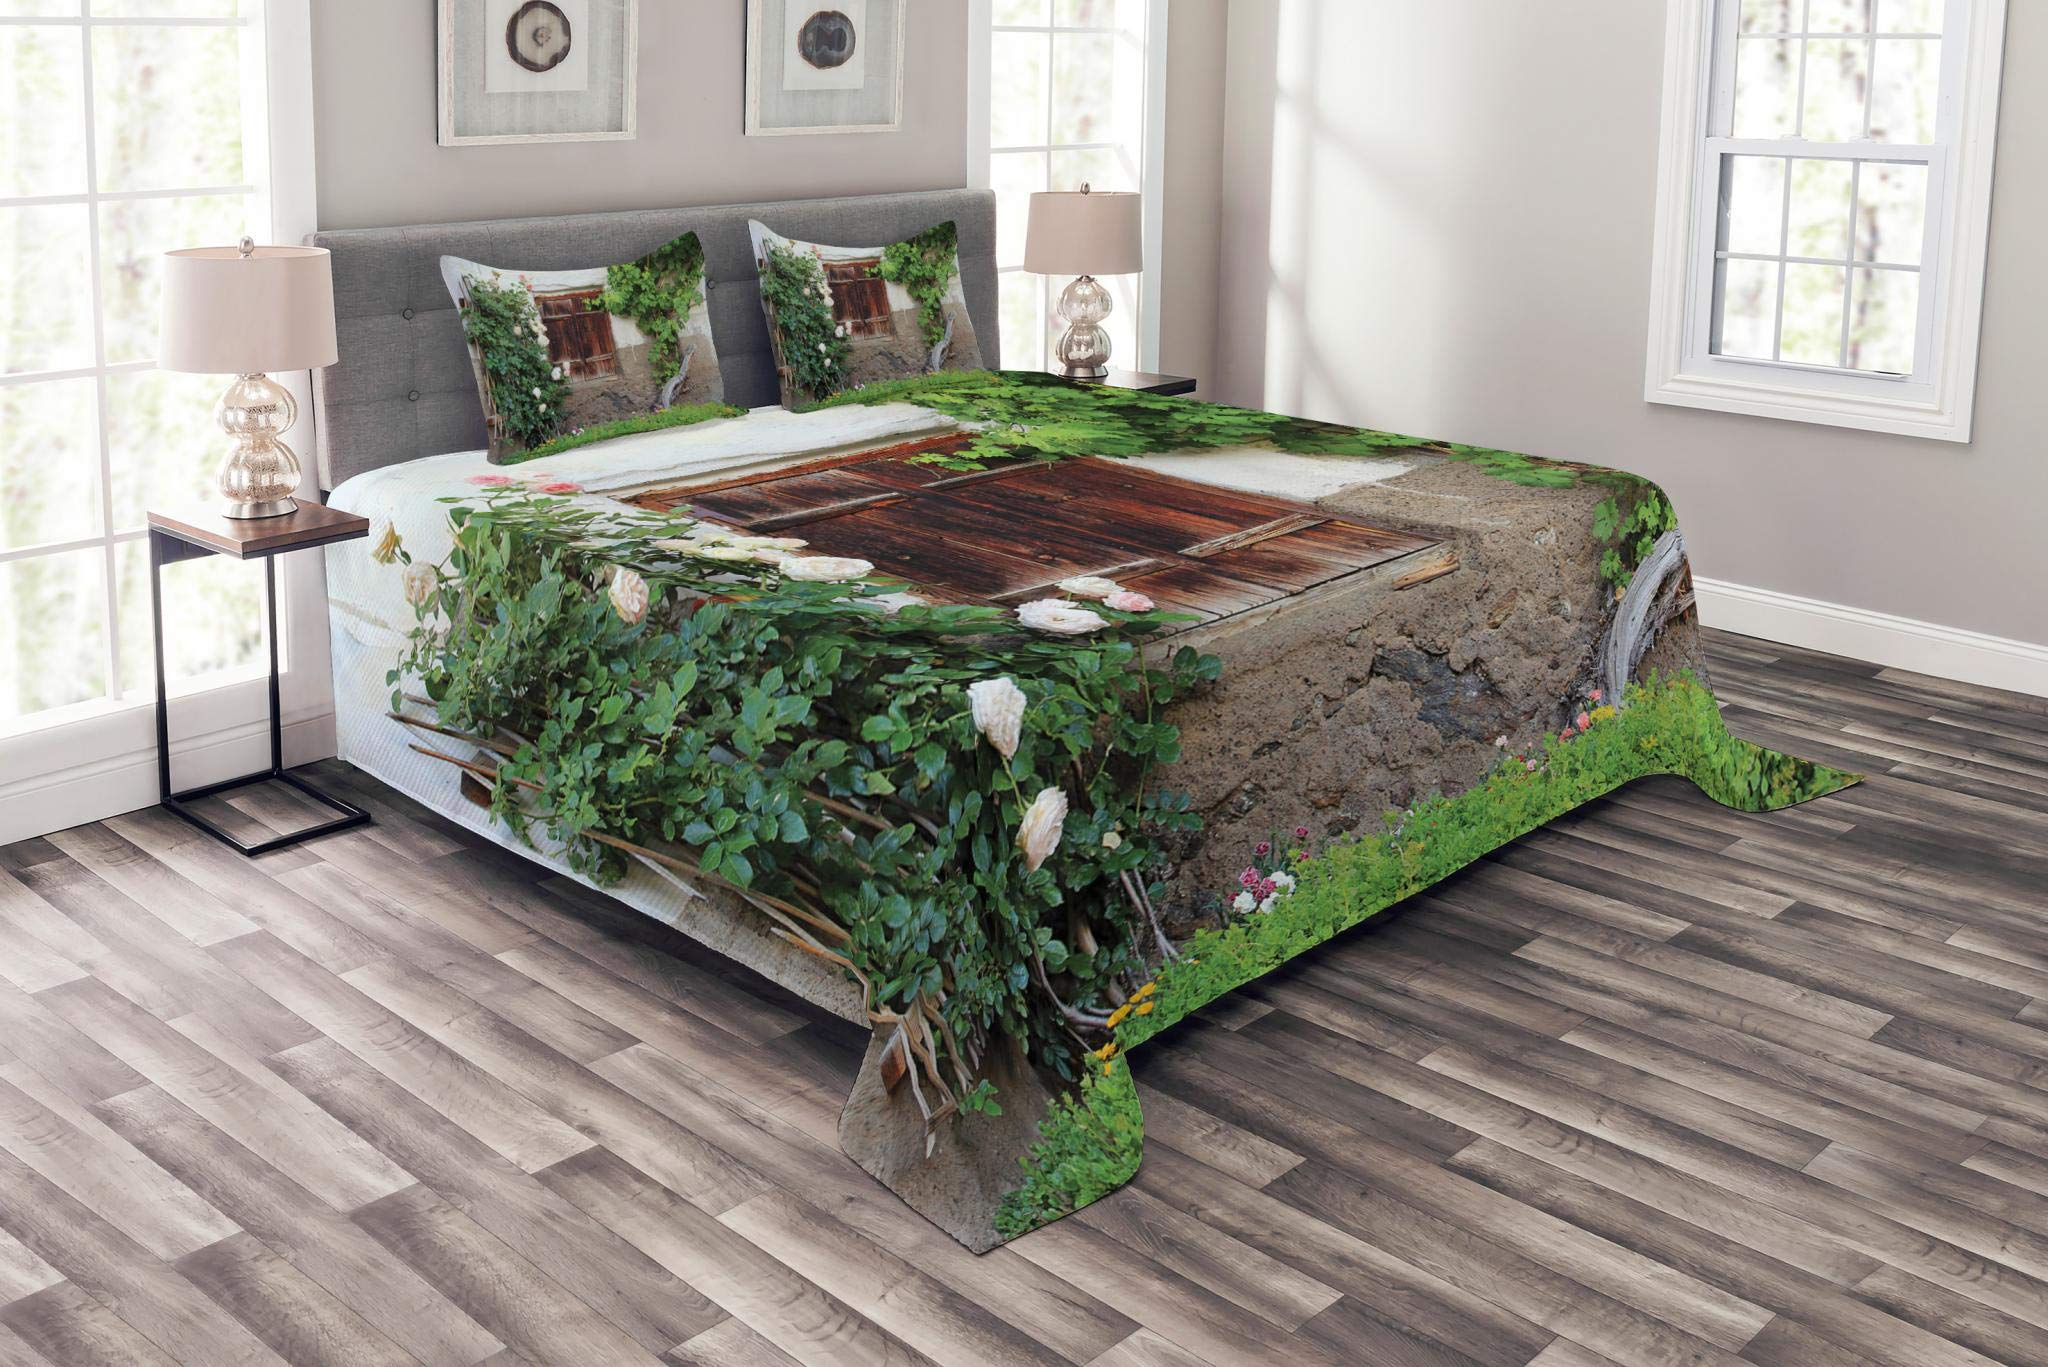 Lunarable Shutters Bedspread Set Queen Size, The Old Windows with Wooden Shutters Roses and Wine Country House Backyard, Decorative Quilted 3 Piece Coverlet Set with 2 Pillow Shams, Green White Brown